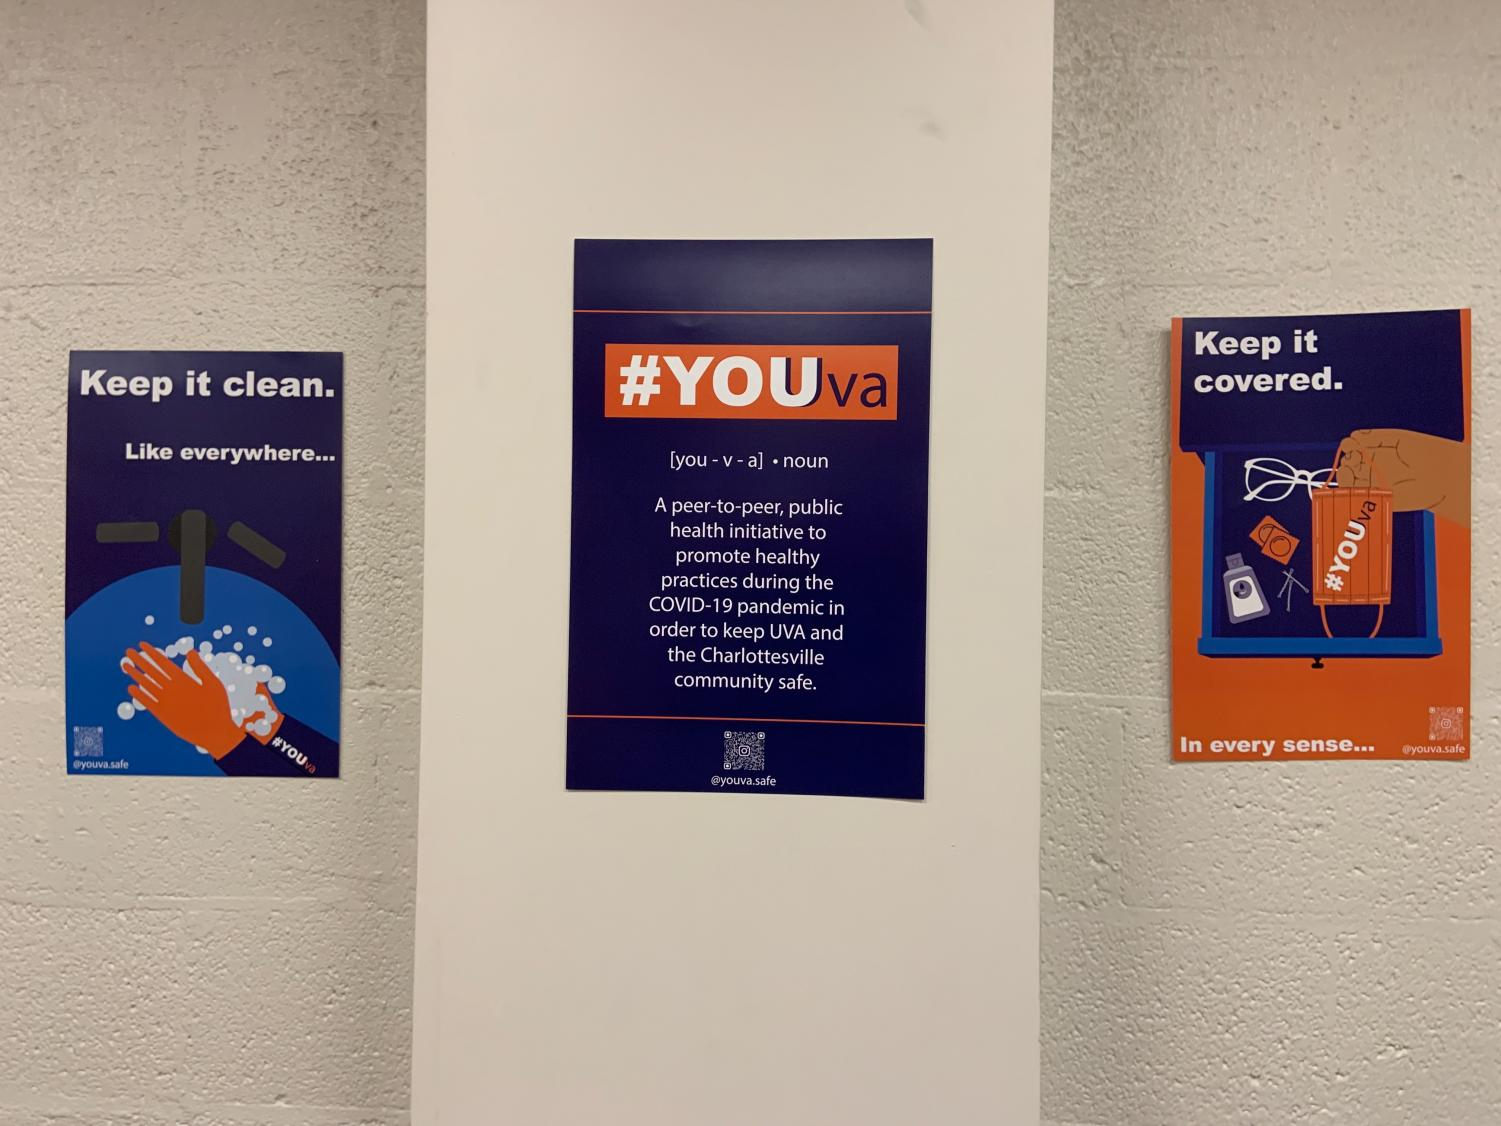 Signs at the University of Virginia to promote a healthy, Covid-friendly environment.